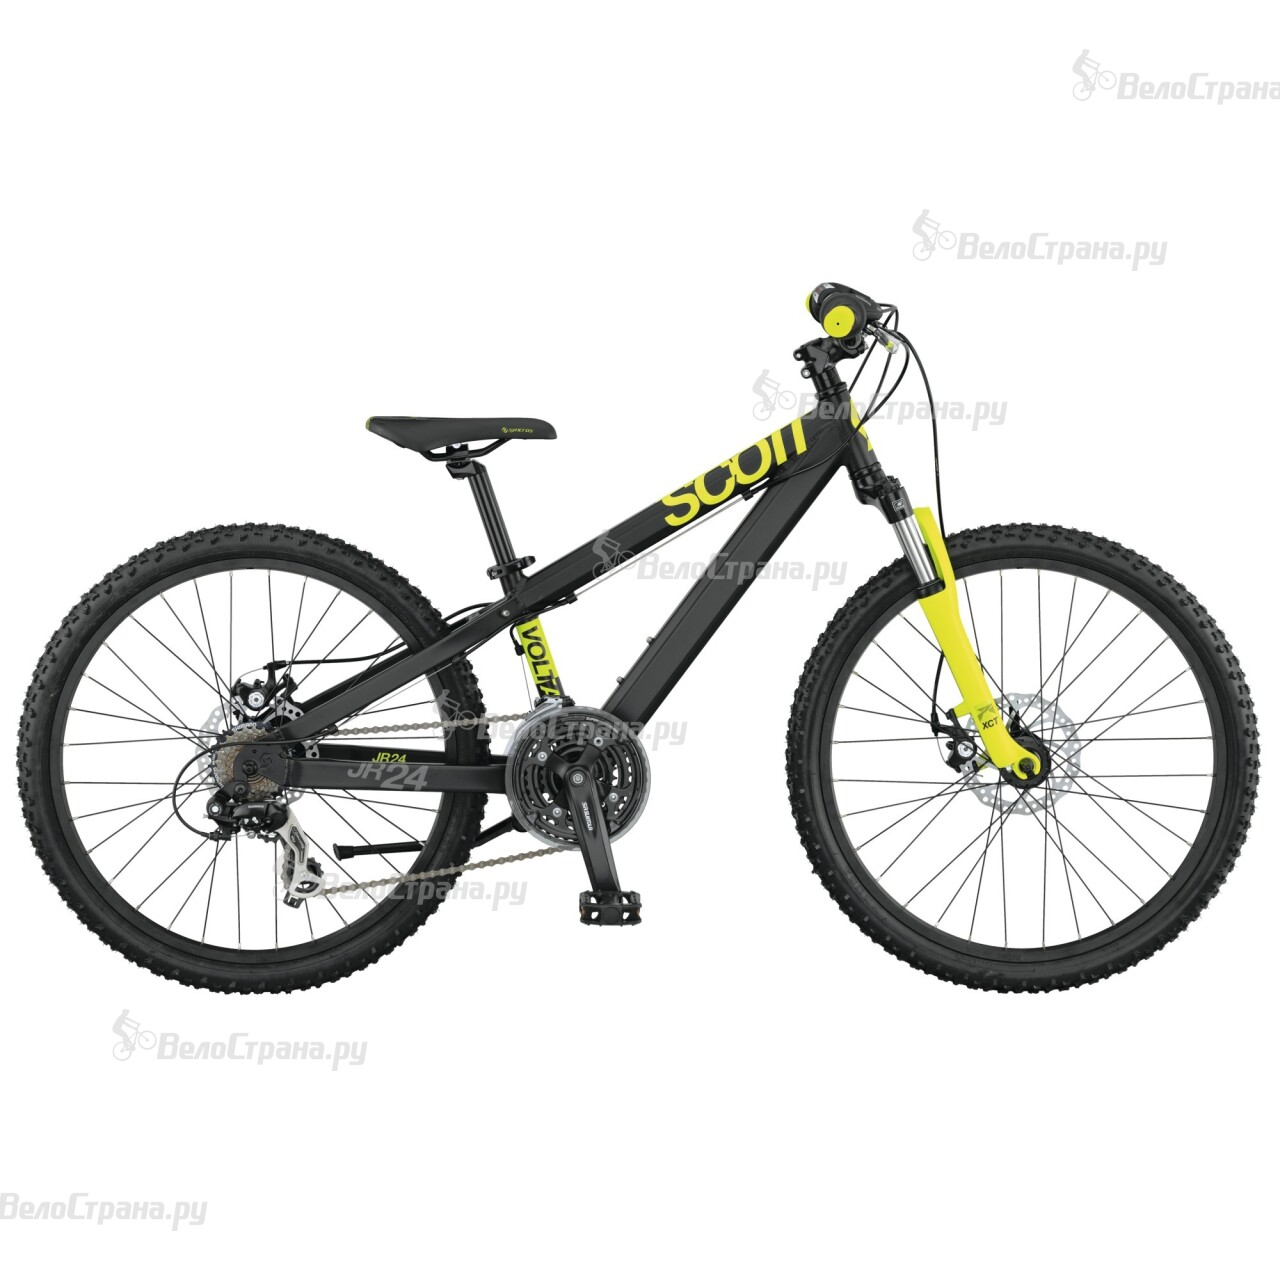 Велосипед Scott Voltage Junior 24 Disc (2015) велосипед scott voltage junior 24 disc 24 2016